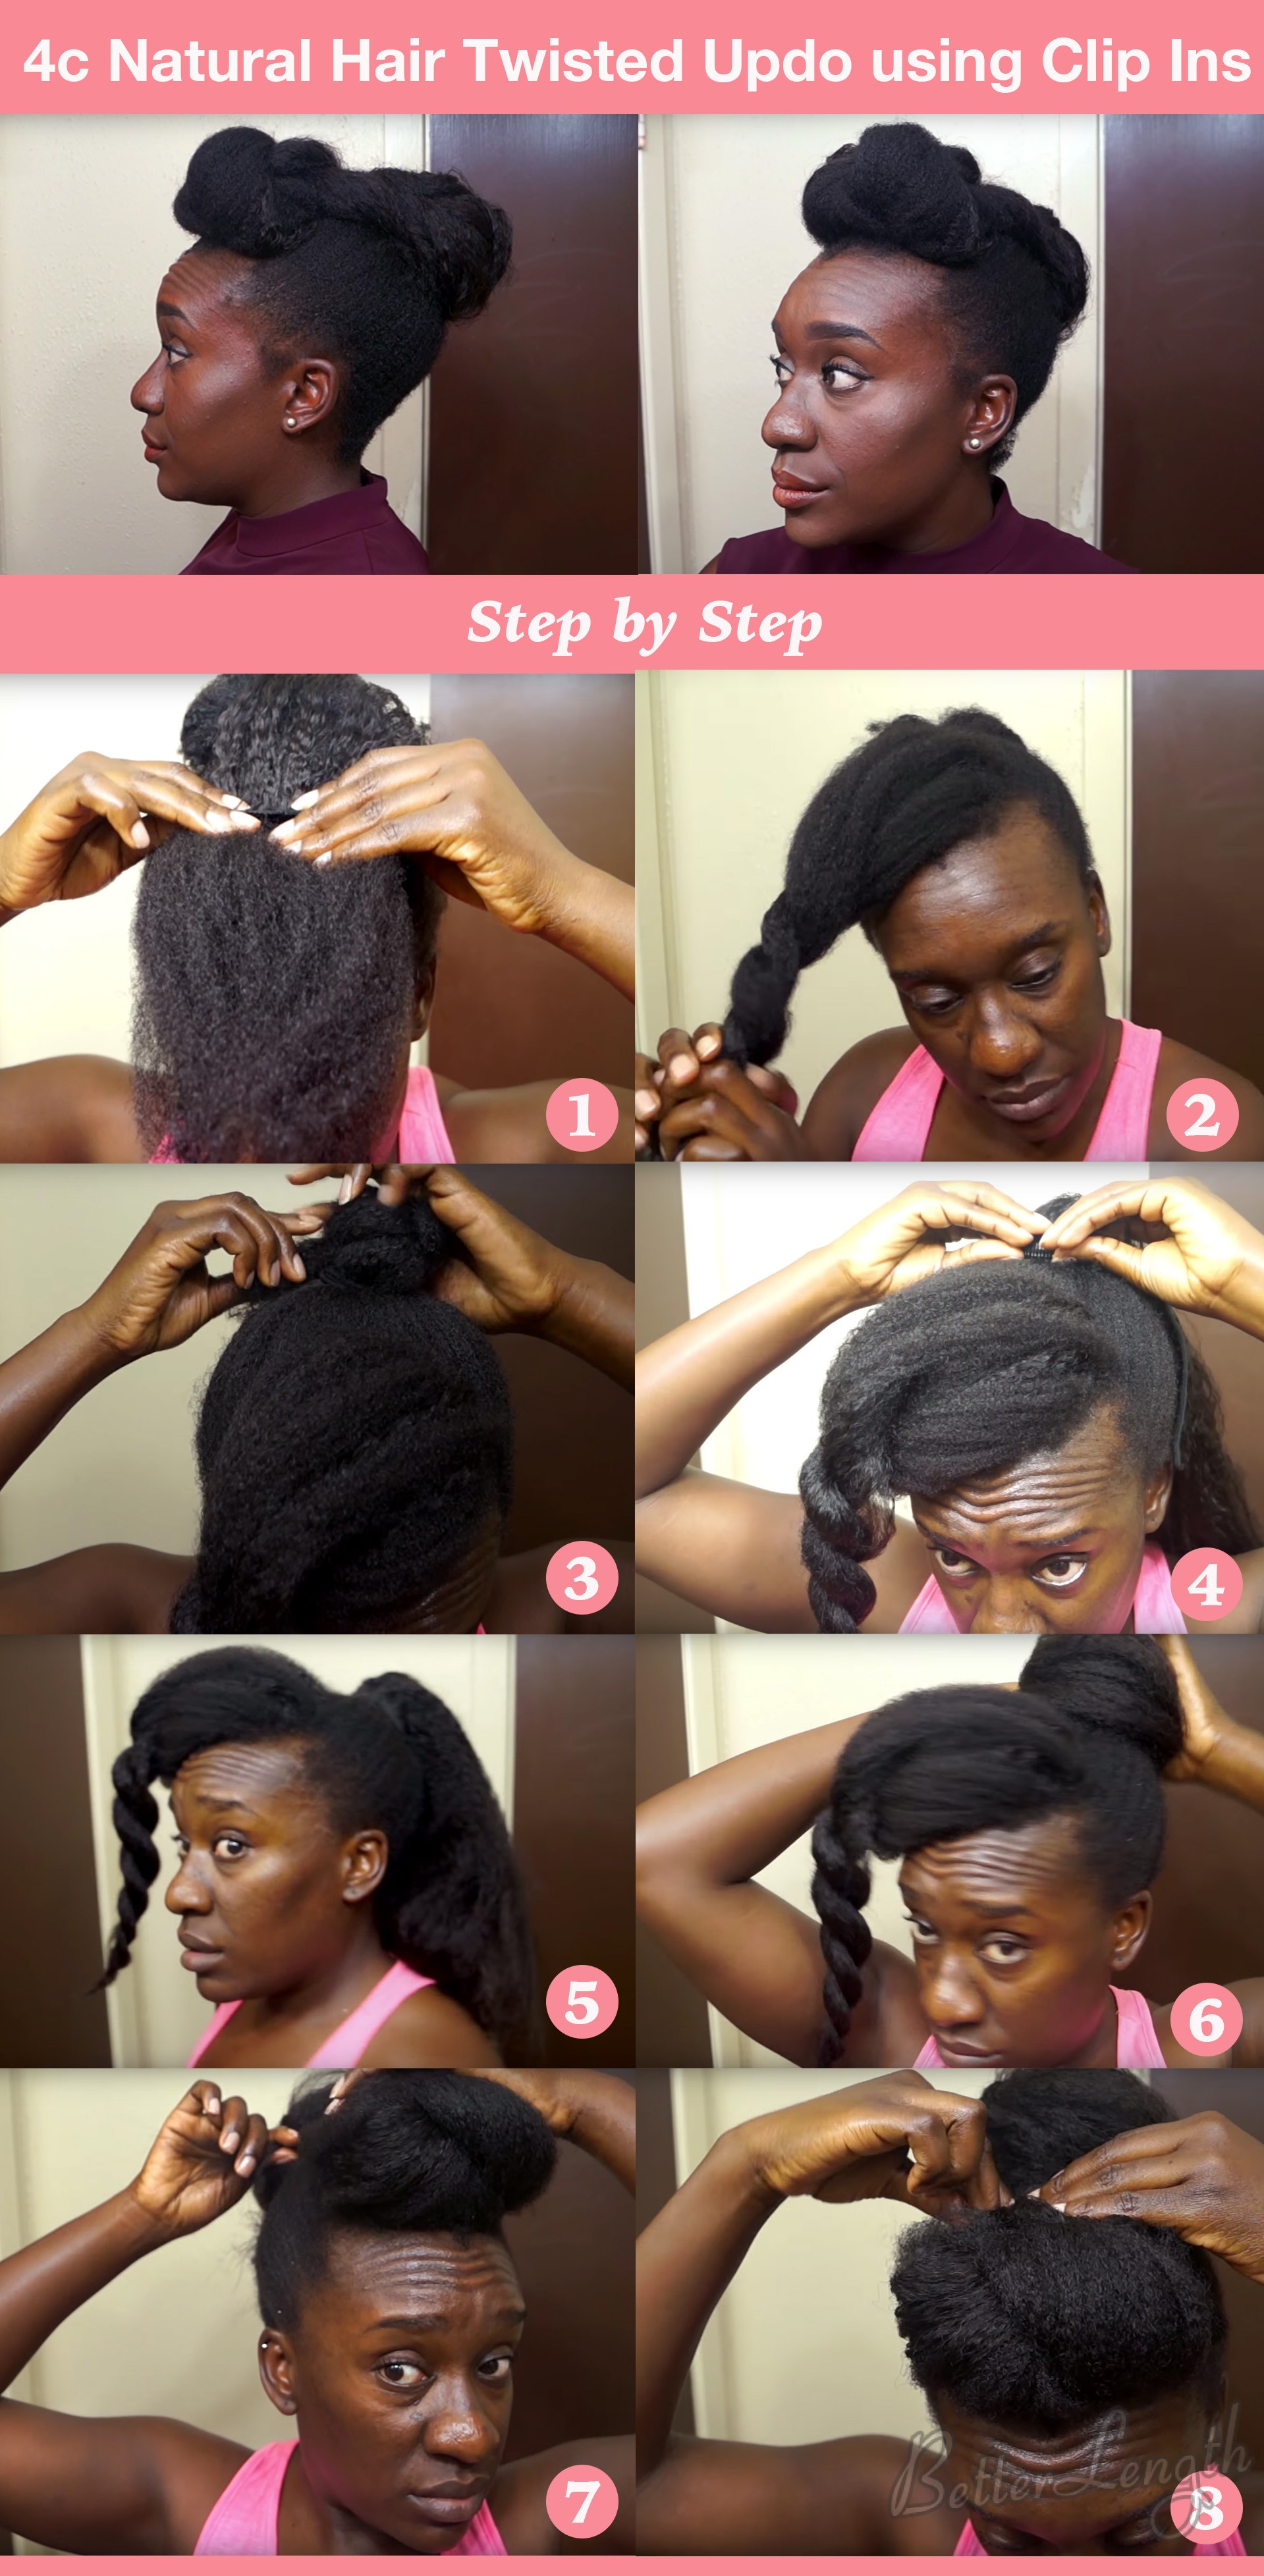 twistedupdo - TOP 6 Quick & Easy Natural Hair Updos